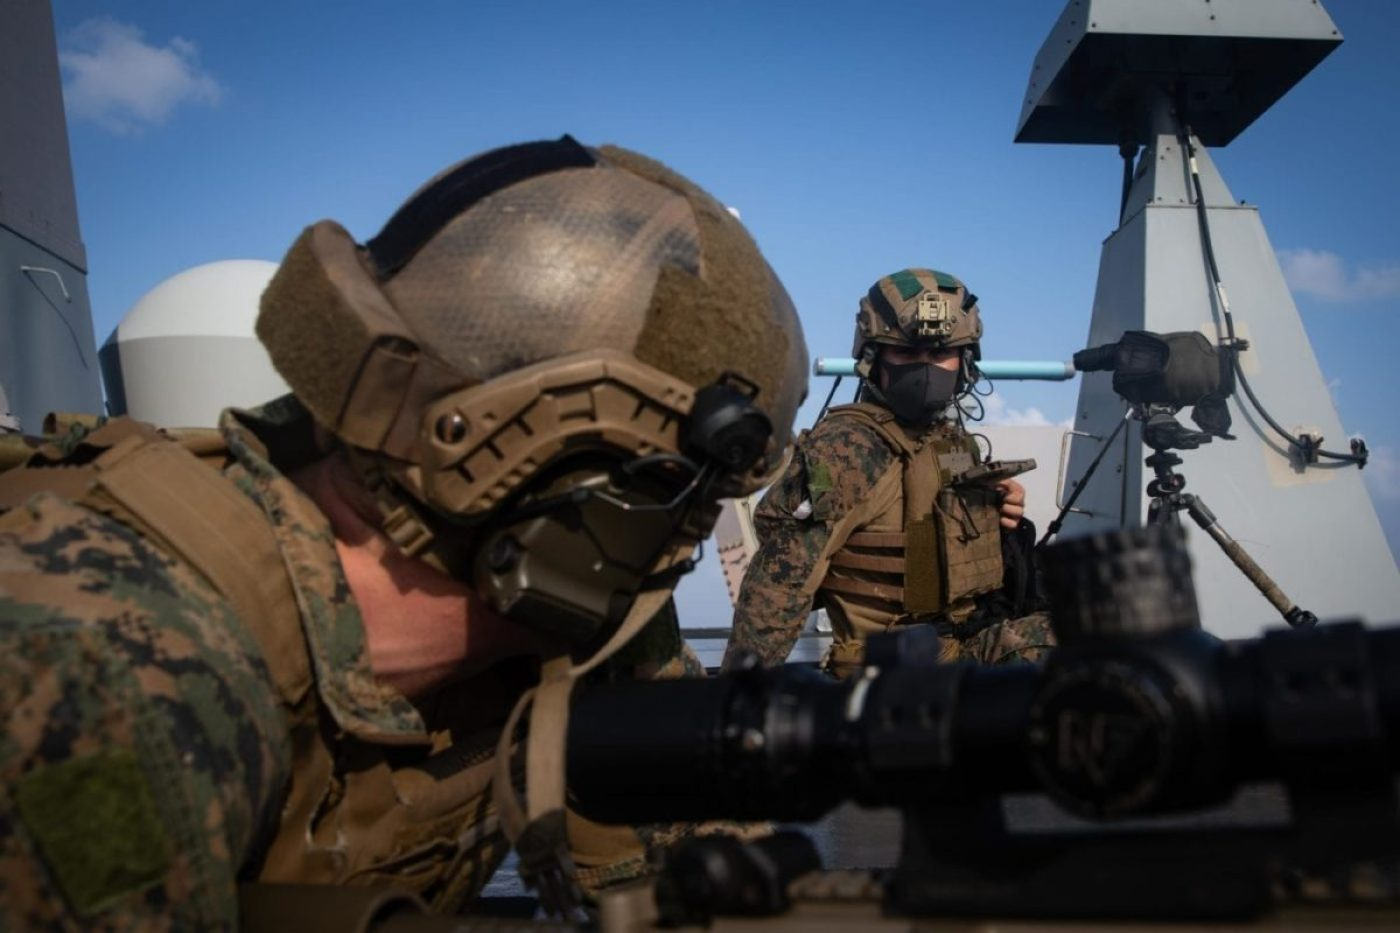 Cpl. Brady Rick, left, and Cpl. Edward Gonzales, a sniper team with 31st Marine Expeditionary Unit's (MEU) Amphibious Raid Force, adjust their position during a simulated visit, board, search, and seizure (VBSS) mission aboard USS New Orleans (LPD 18). (U.S. Marine Corps photo by Sgt. Audrey M. C. Rampton)